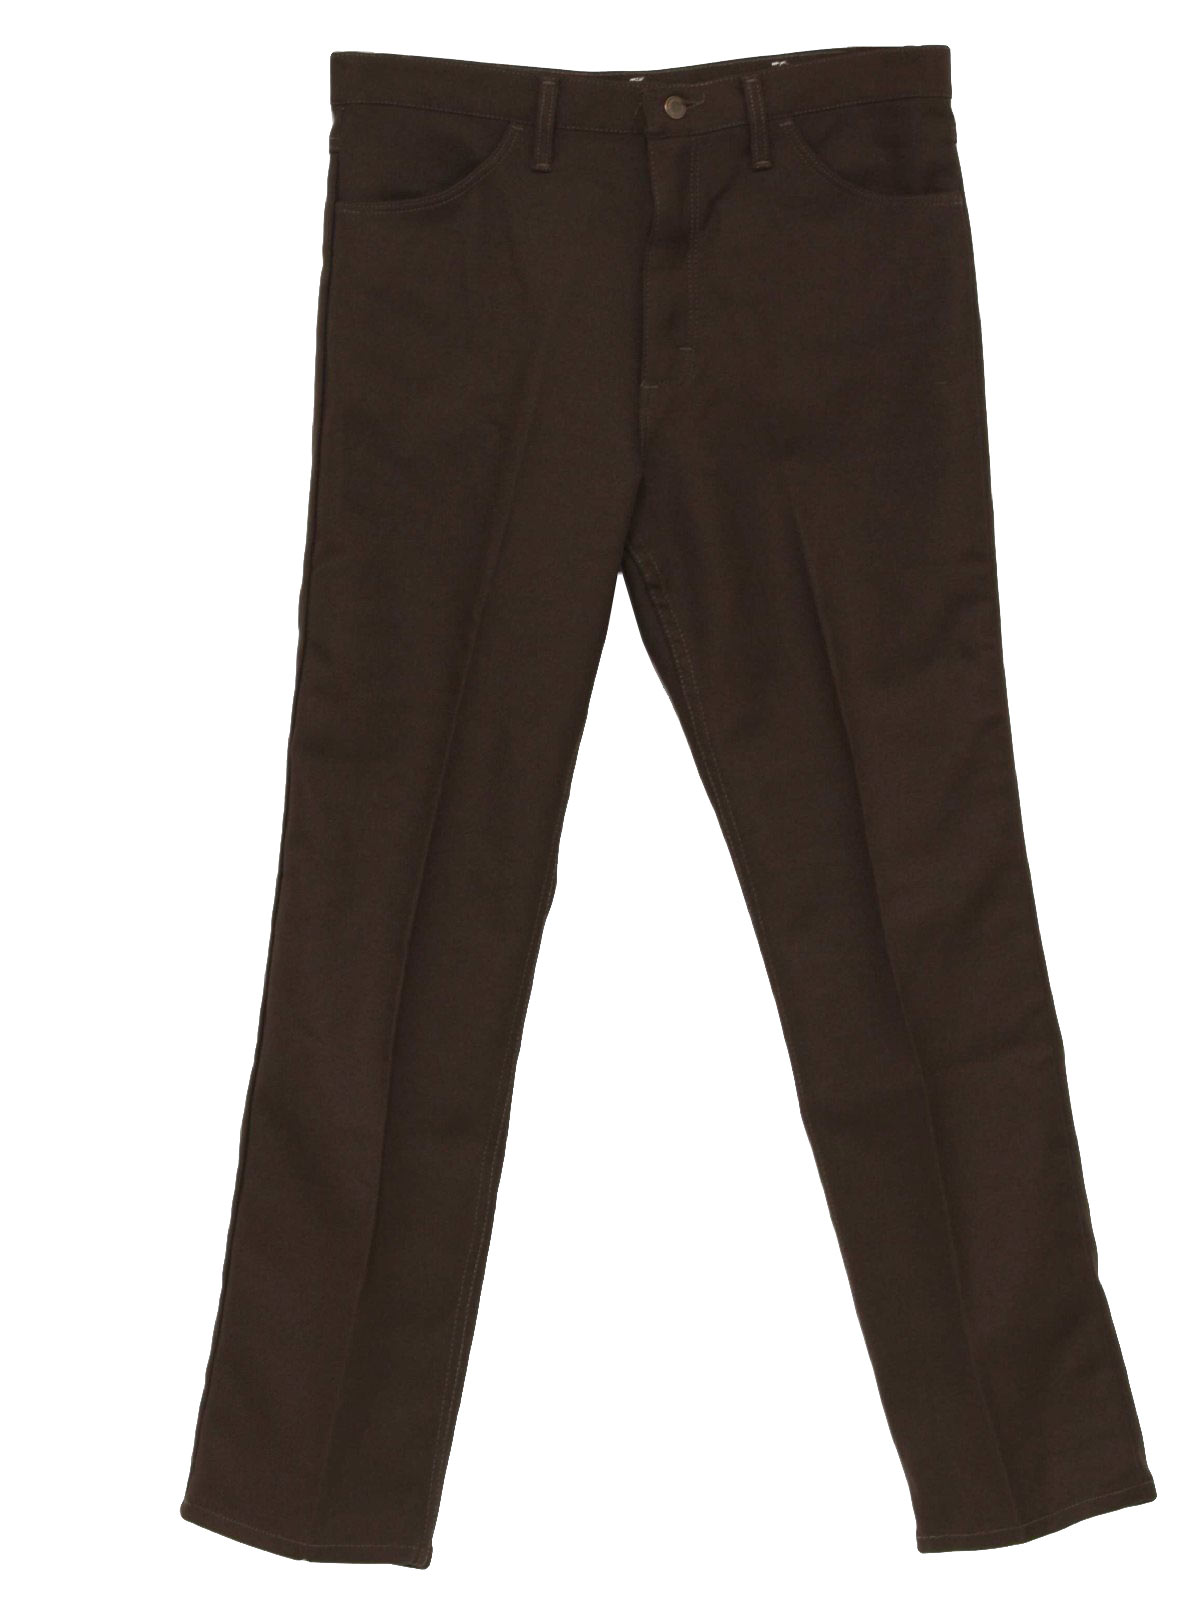 70's Wrangler Pants: 70s -Wrangler- Mens dark brown straight leg ...